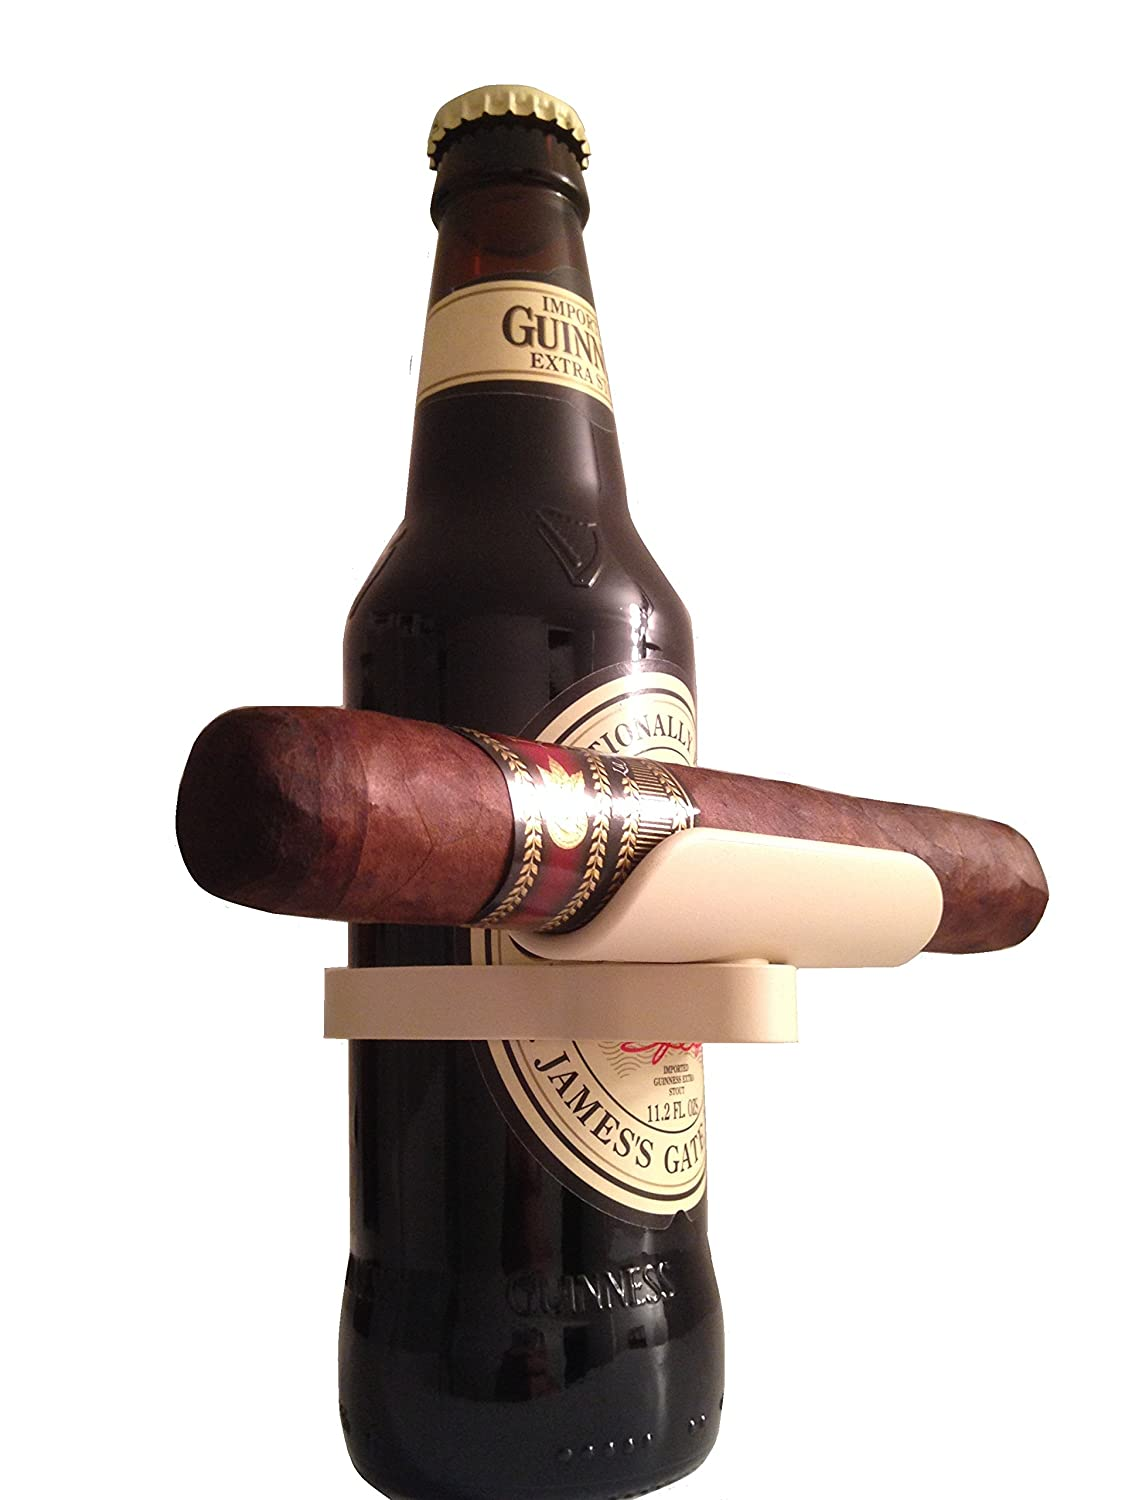 CigarZup Cigar Holder. Fits onto any Bottled Beverage! Perfect Gift, Cigar Accessory for any Cigar Enthusiast! SCI